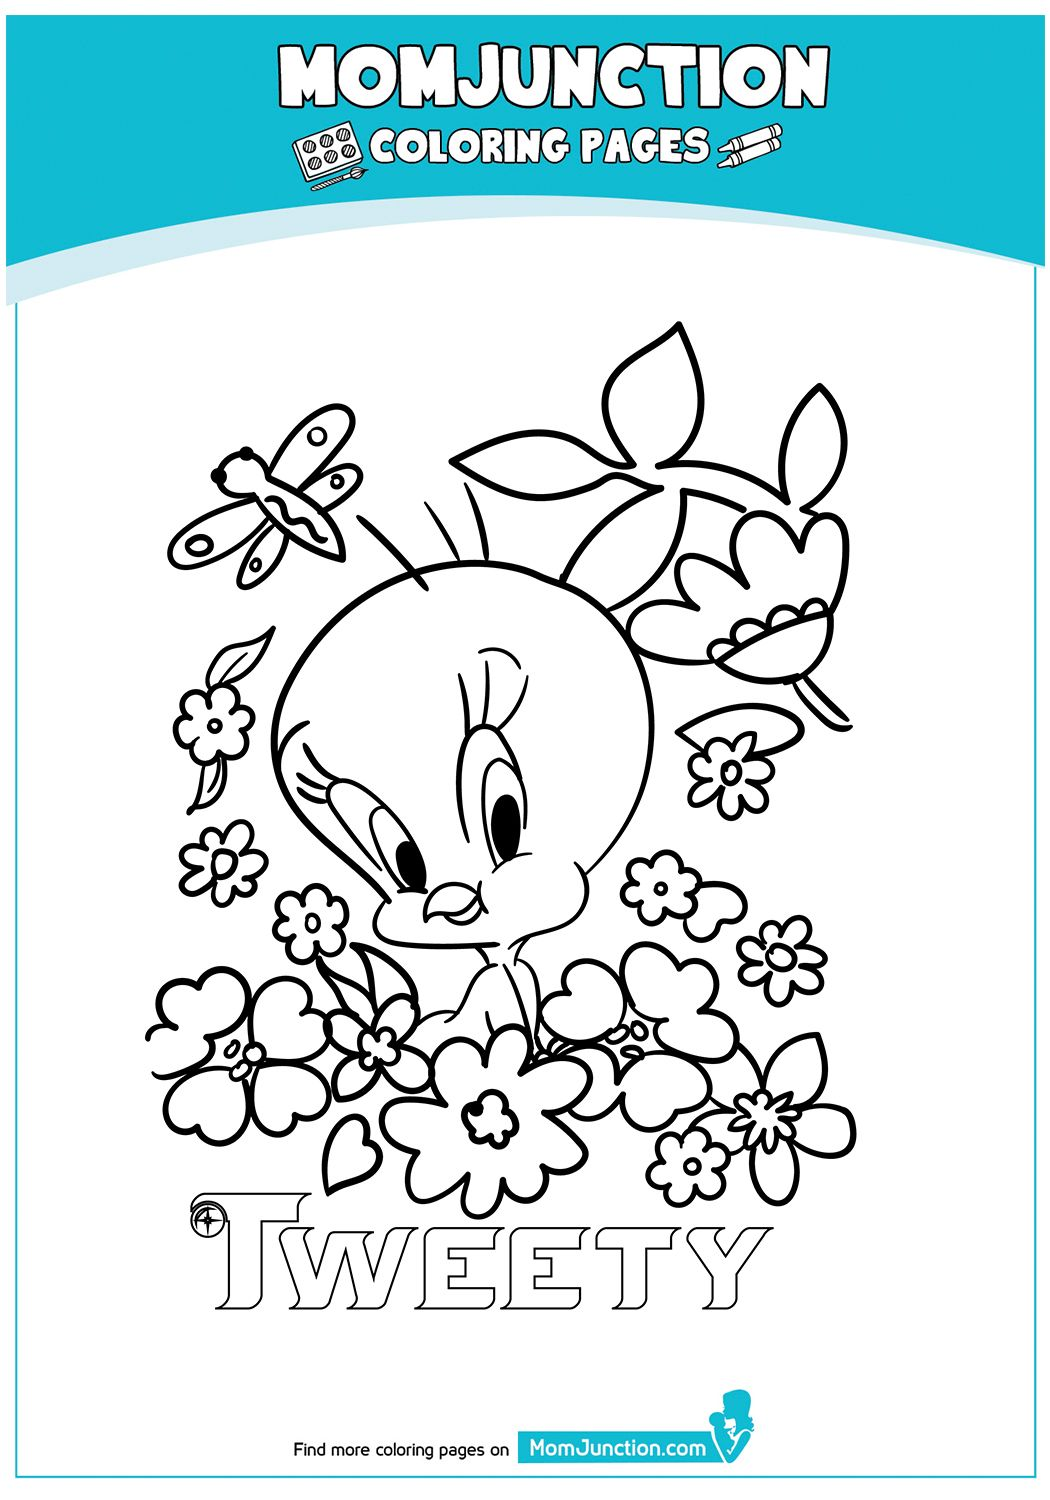 print coloring image MomJunction Bird coloring pages